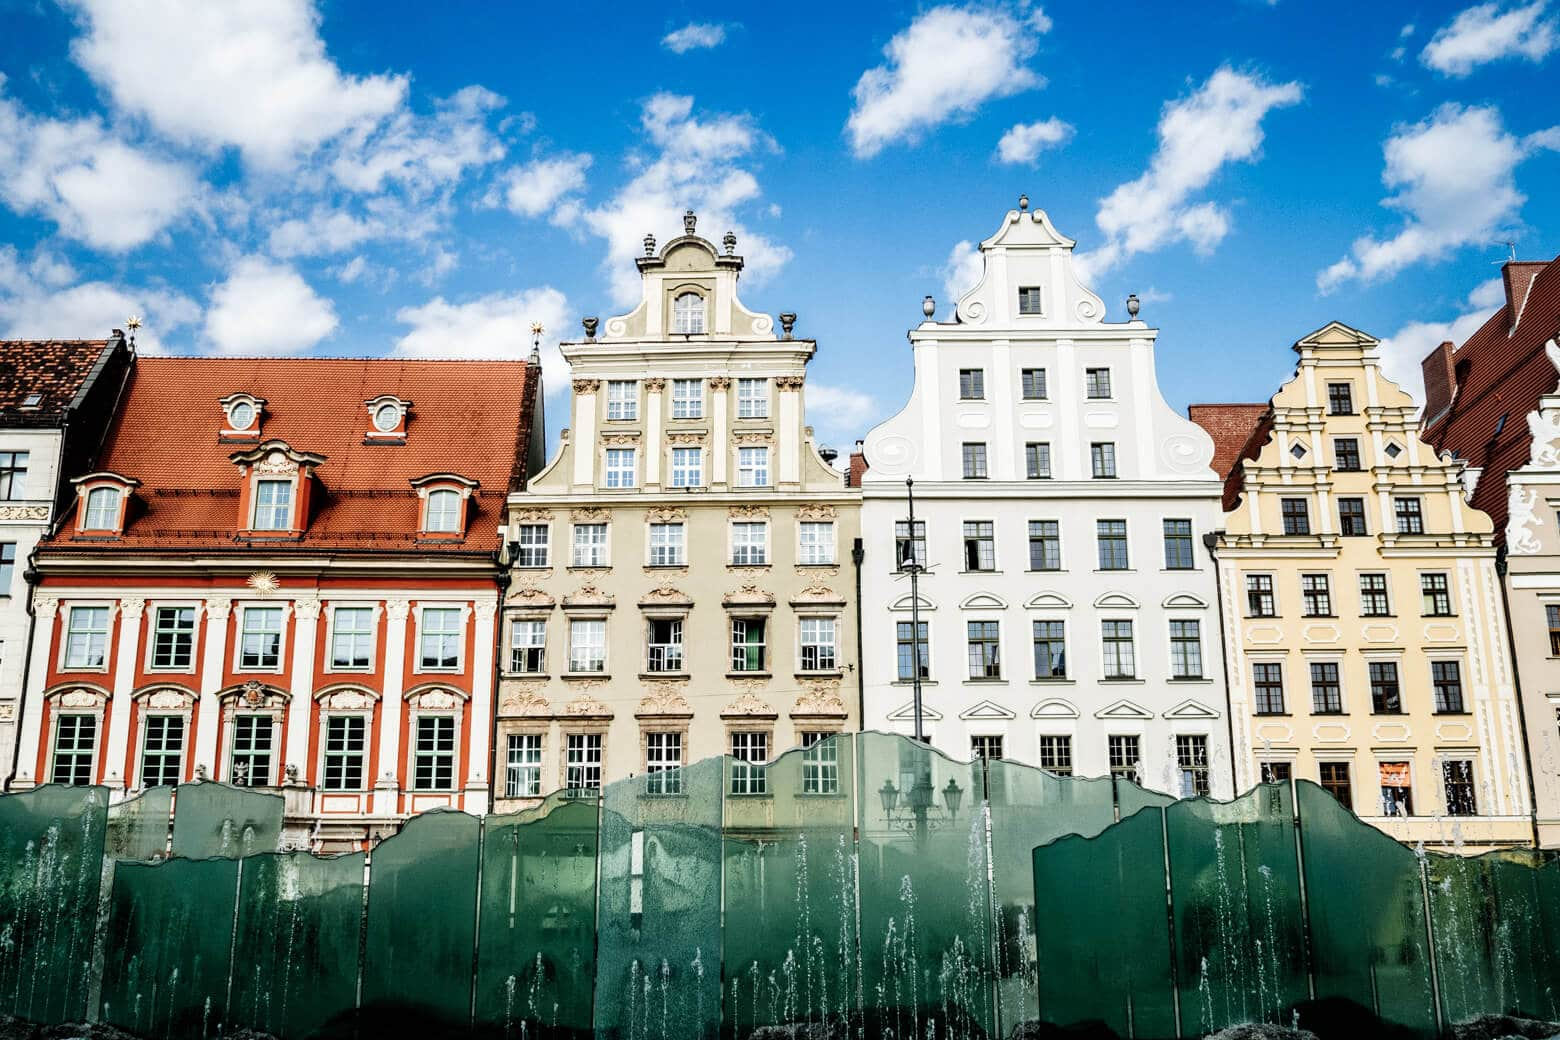 Wroclaw's Main Square